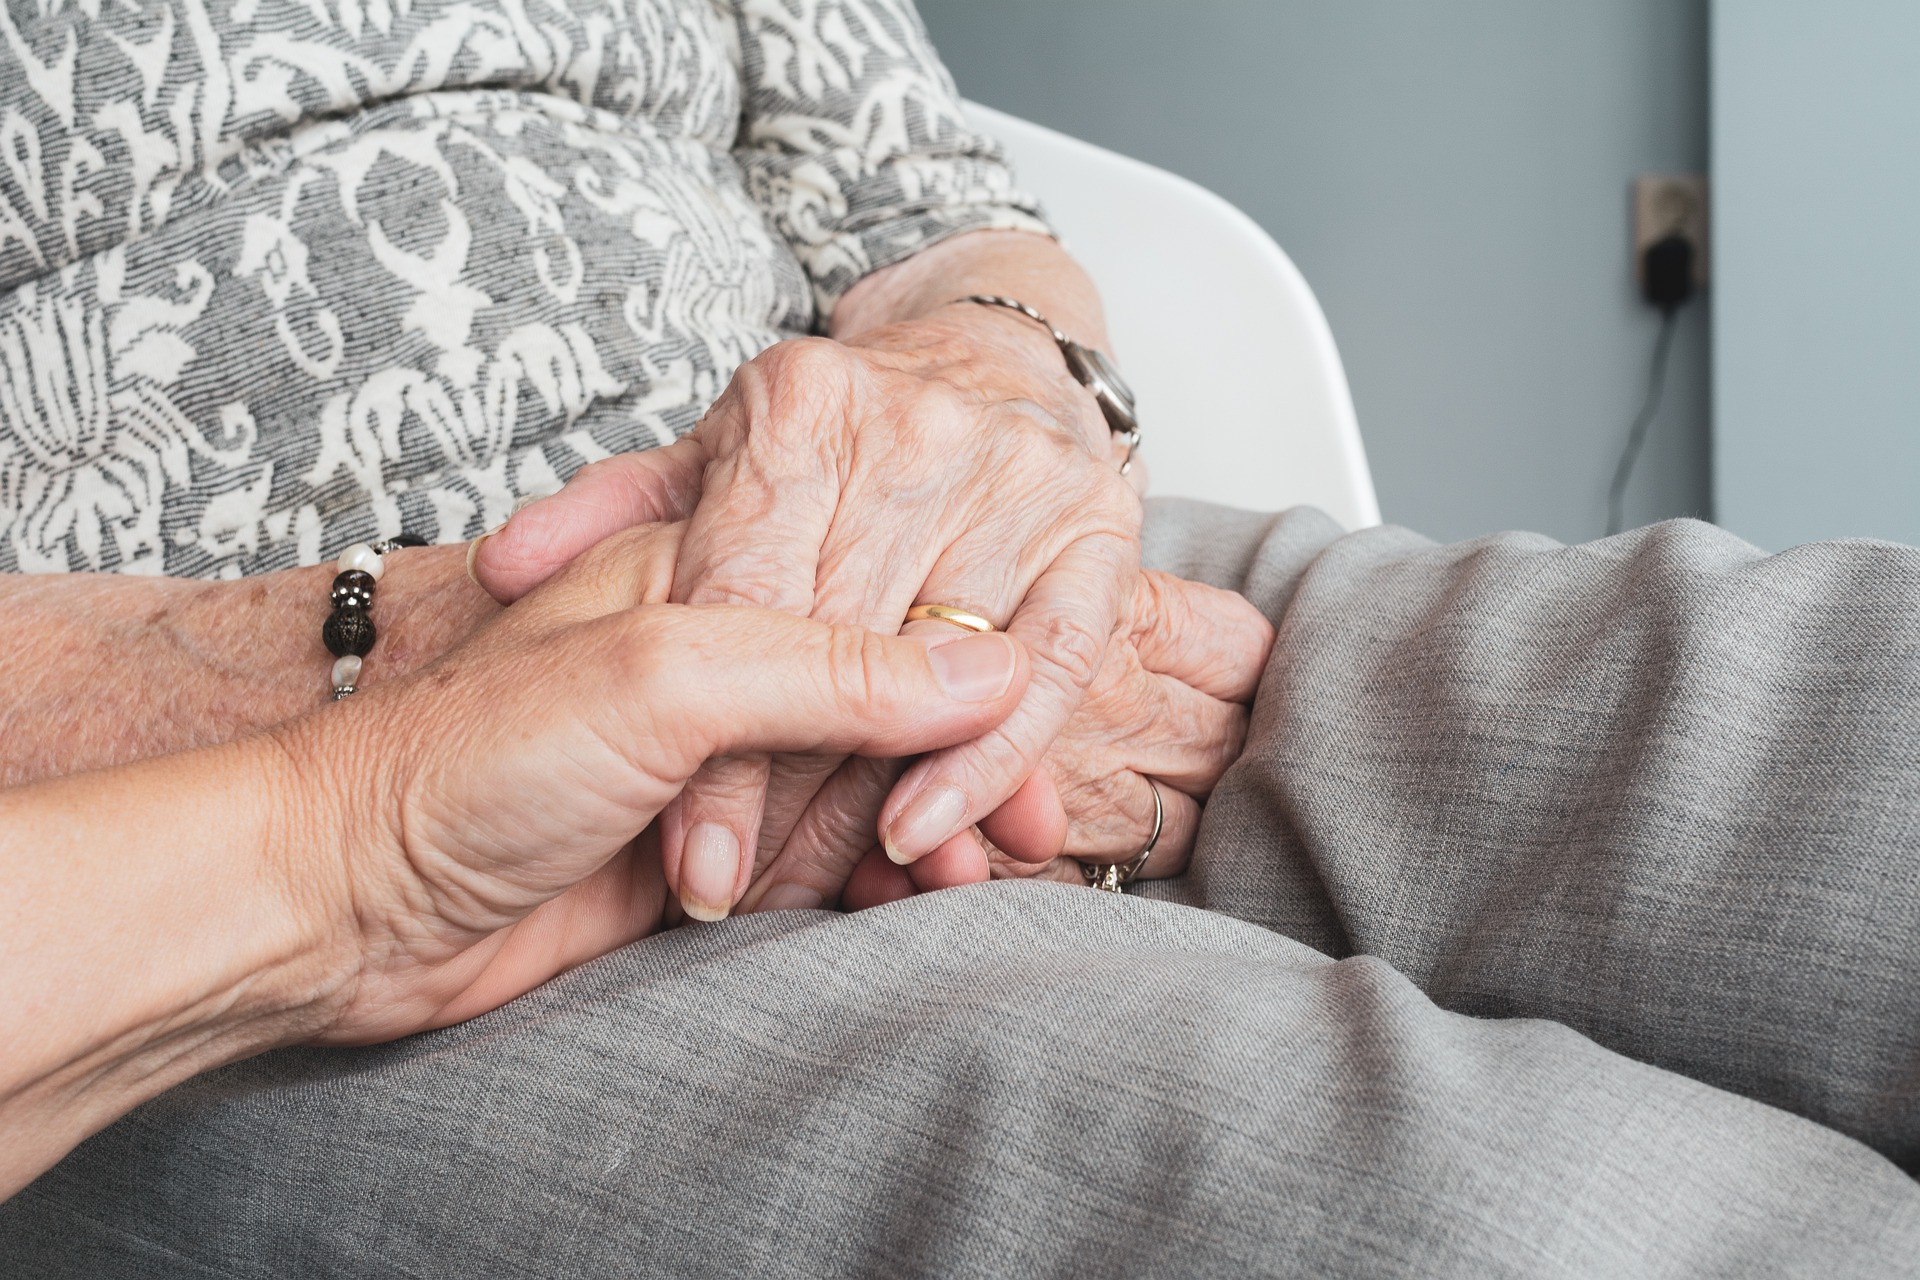 What's the difference between personal care and assisted living?